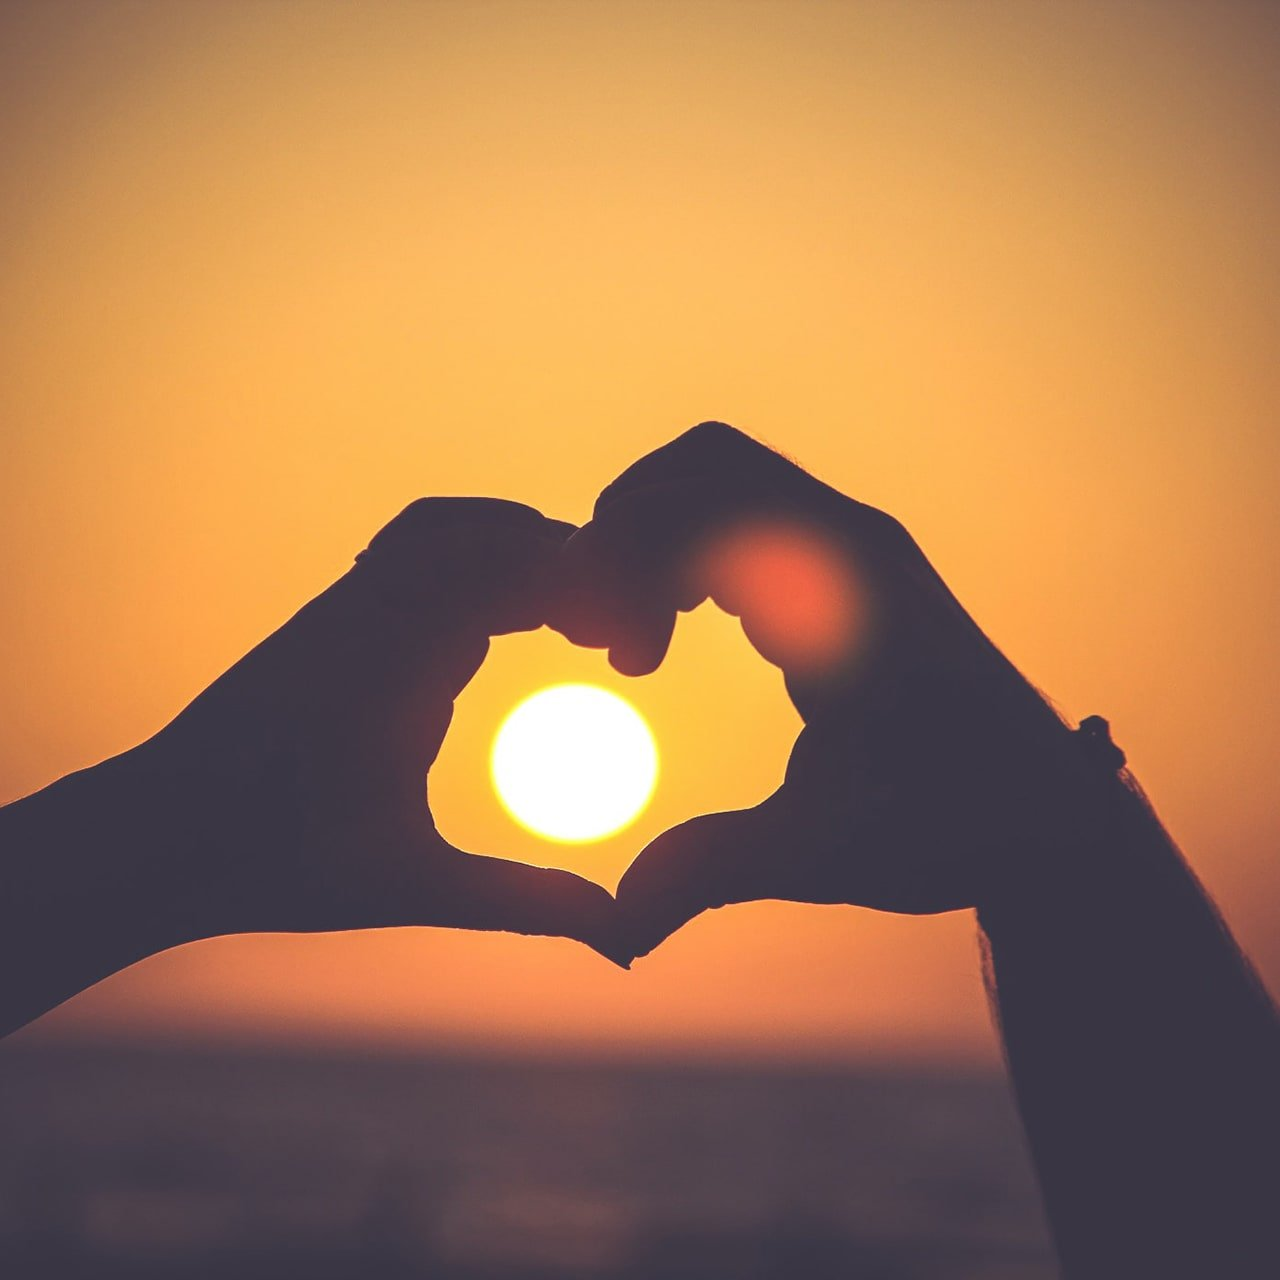 Hands forming a heart shape at sunrise